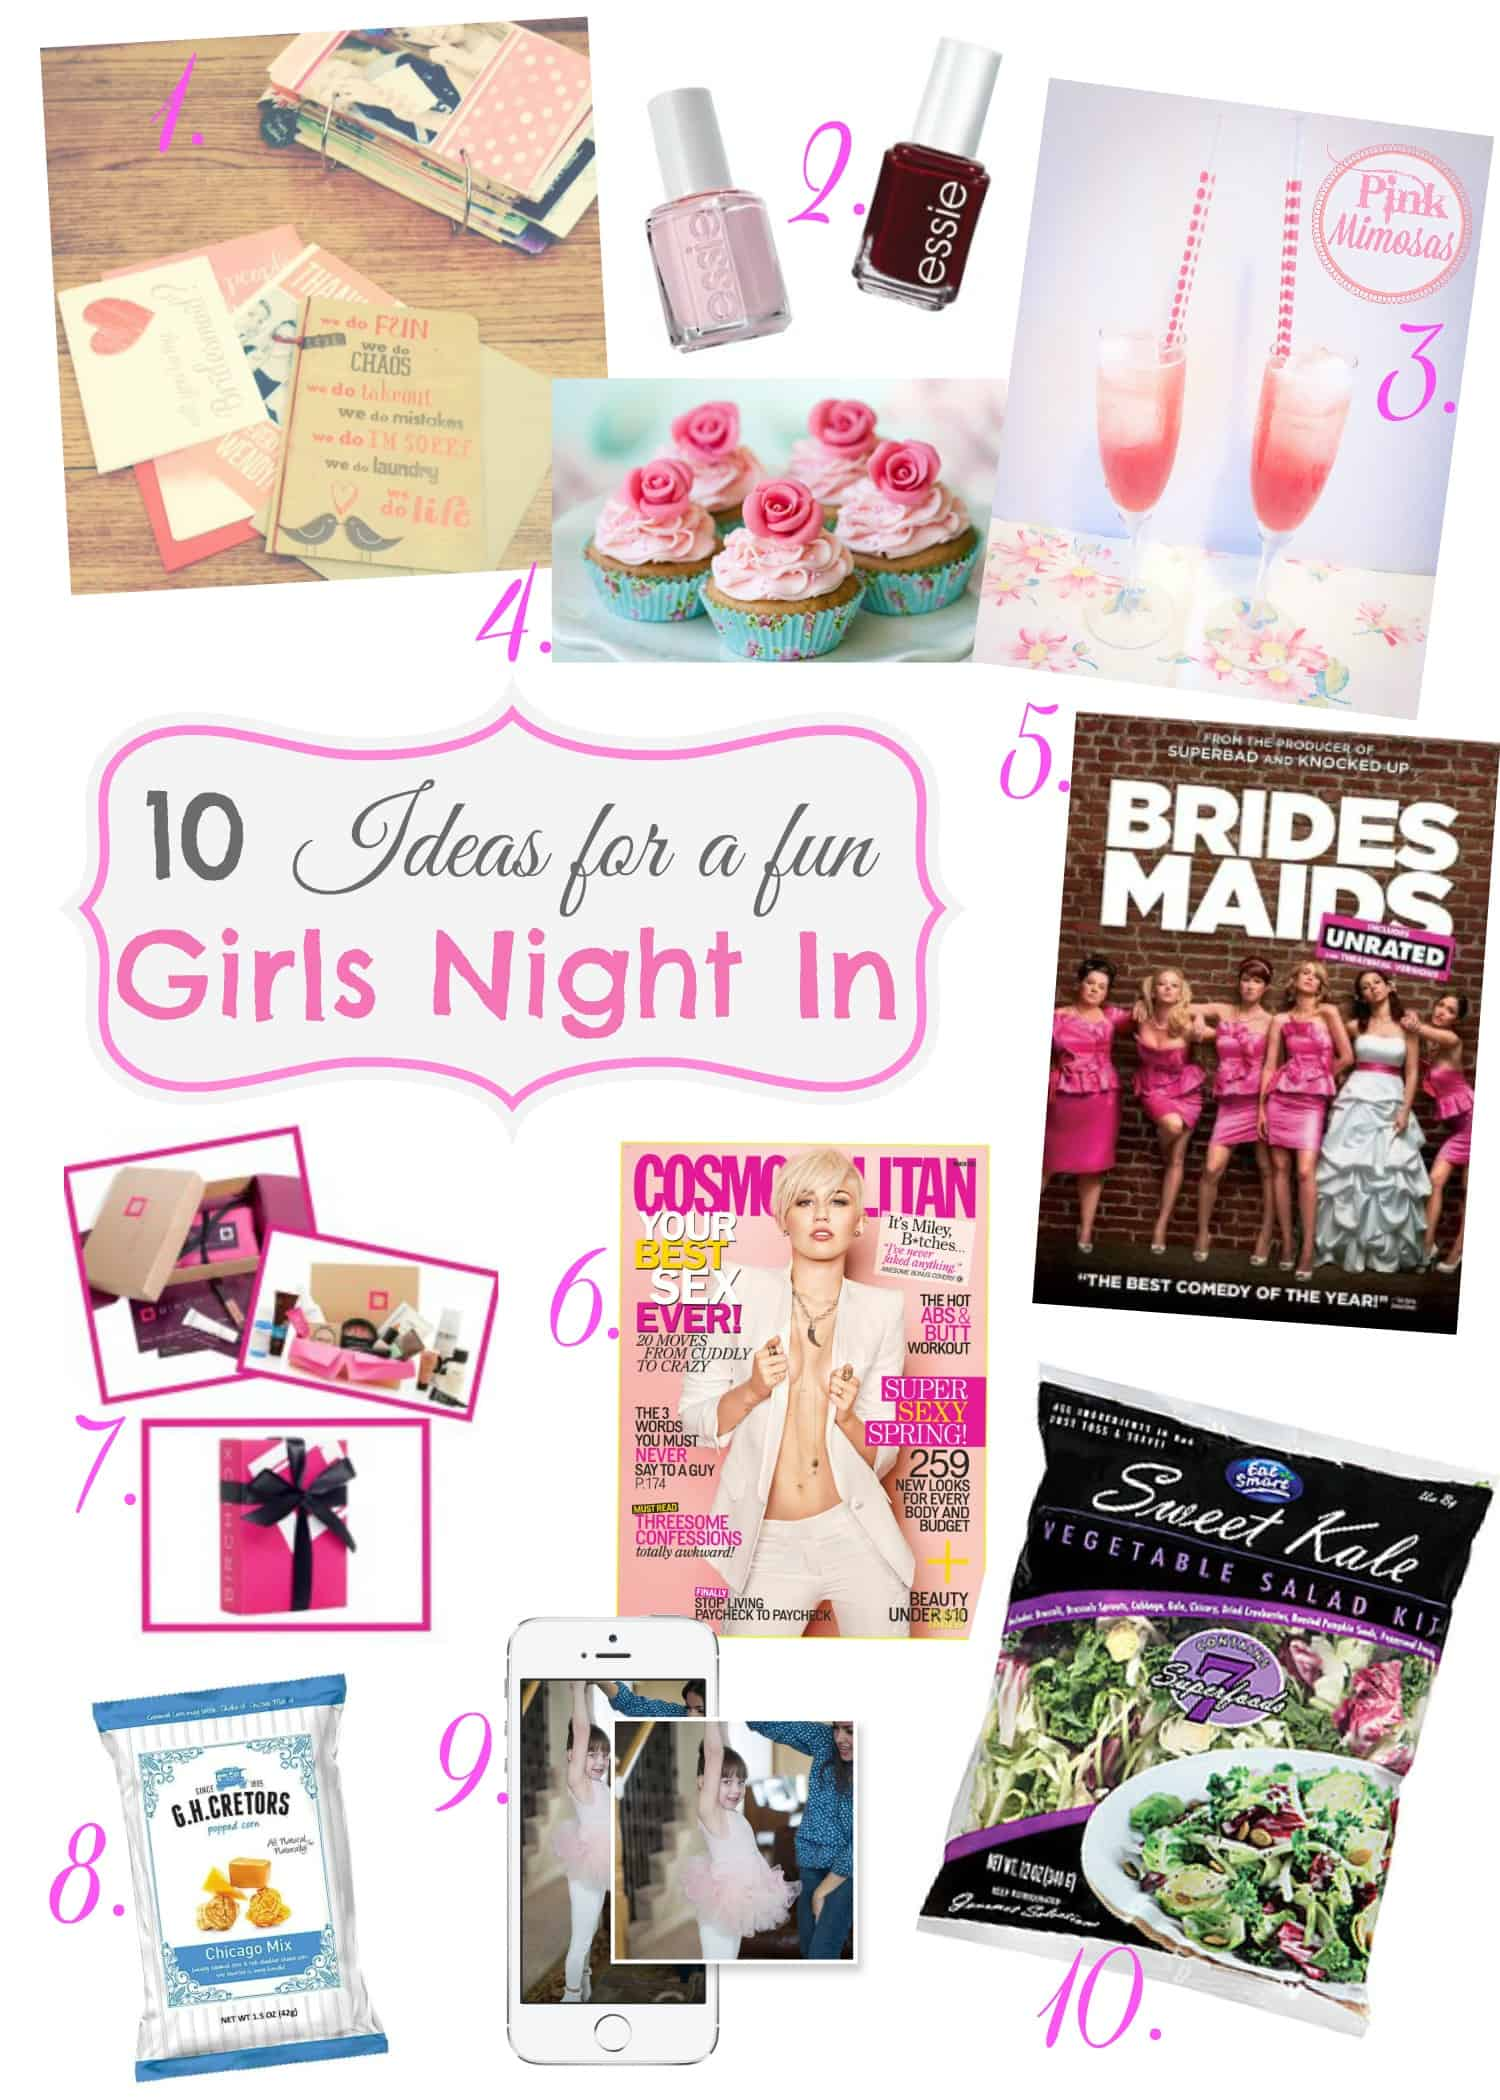 Sweet Sundays: 10 Ideas for a Girls Night In